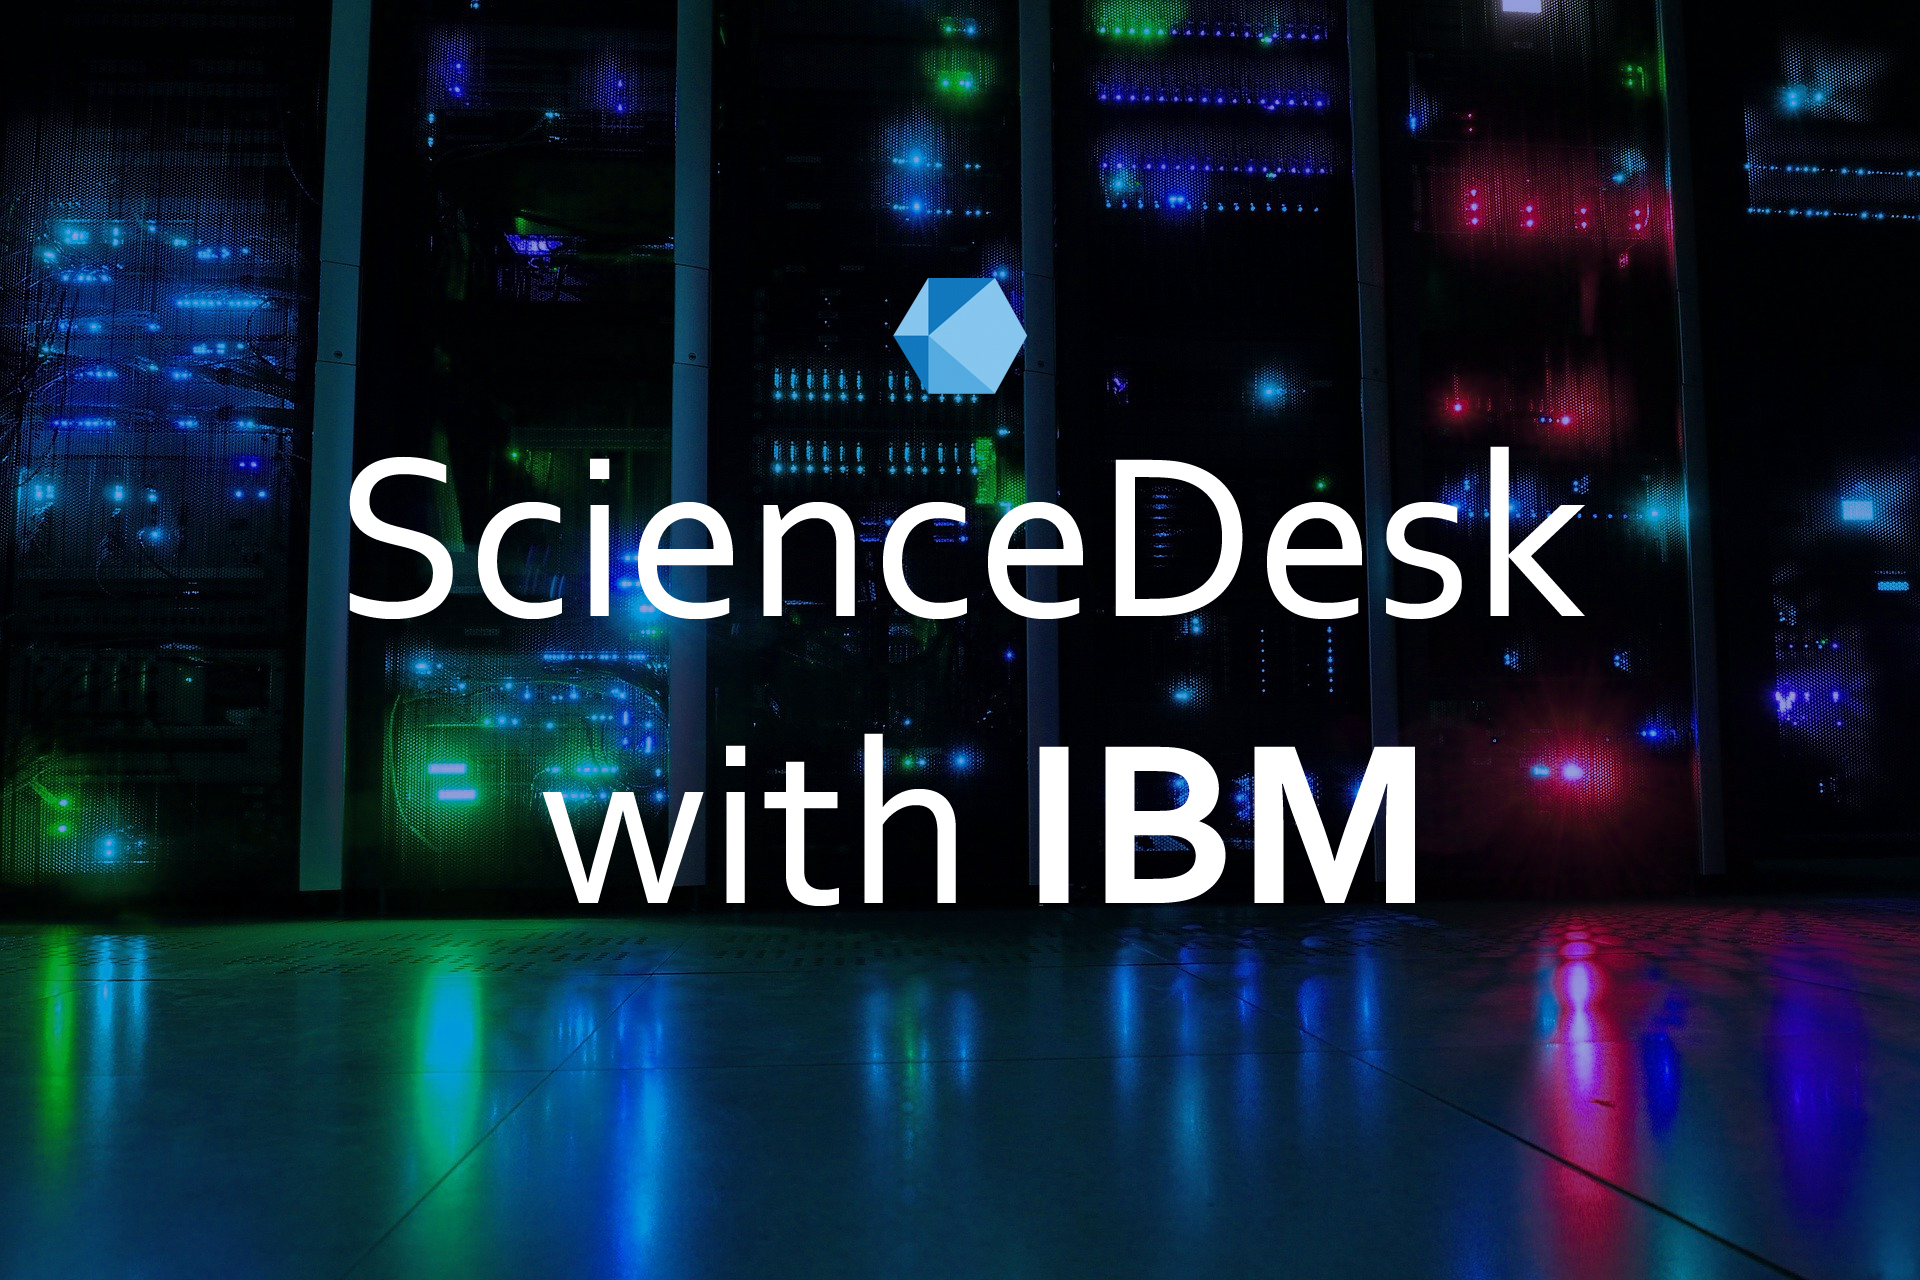 ScienceDesk is selected for 'Startup with IBM' program